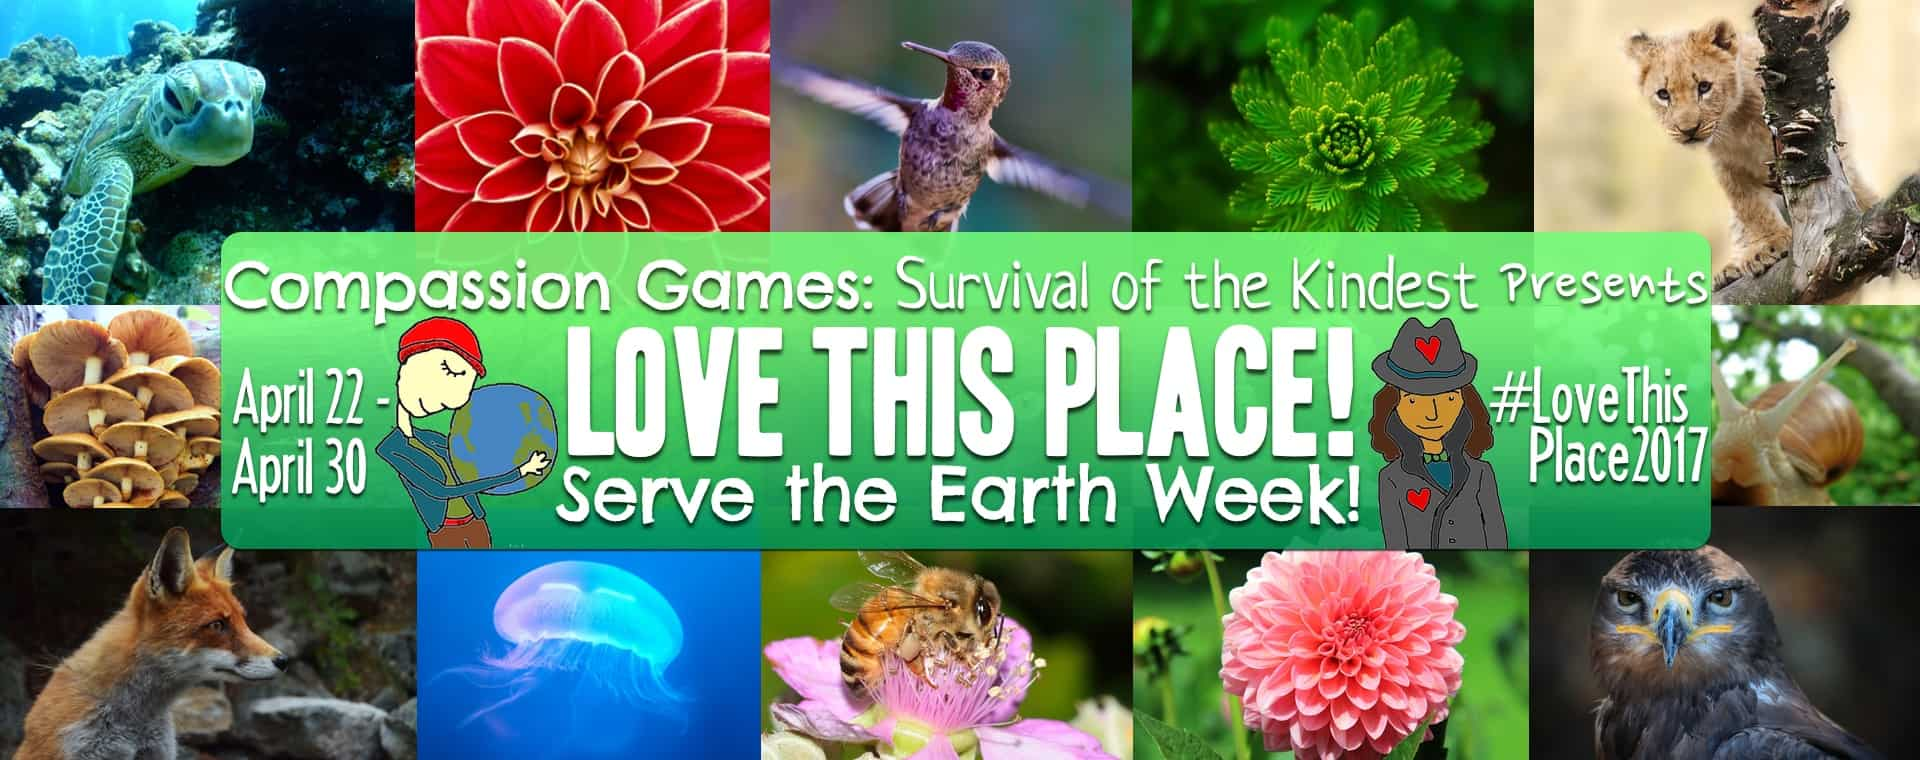 Compassion Games, Love this Place! Serve the Earth Week